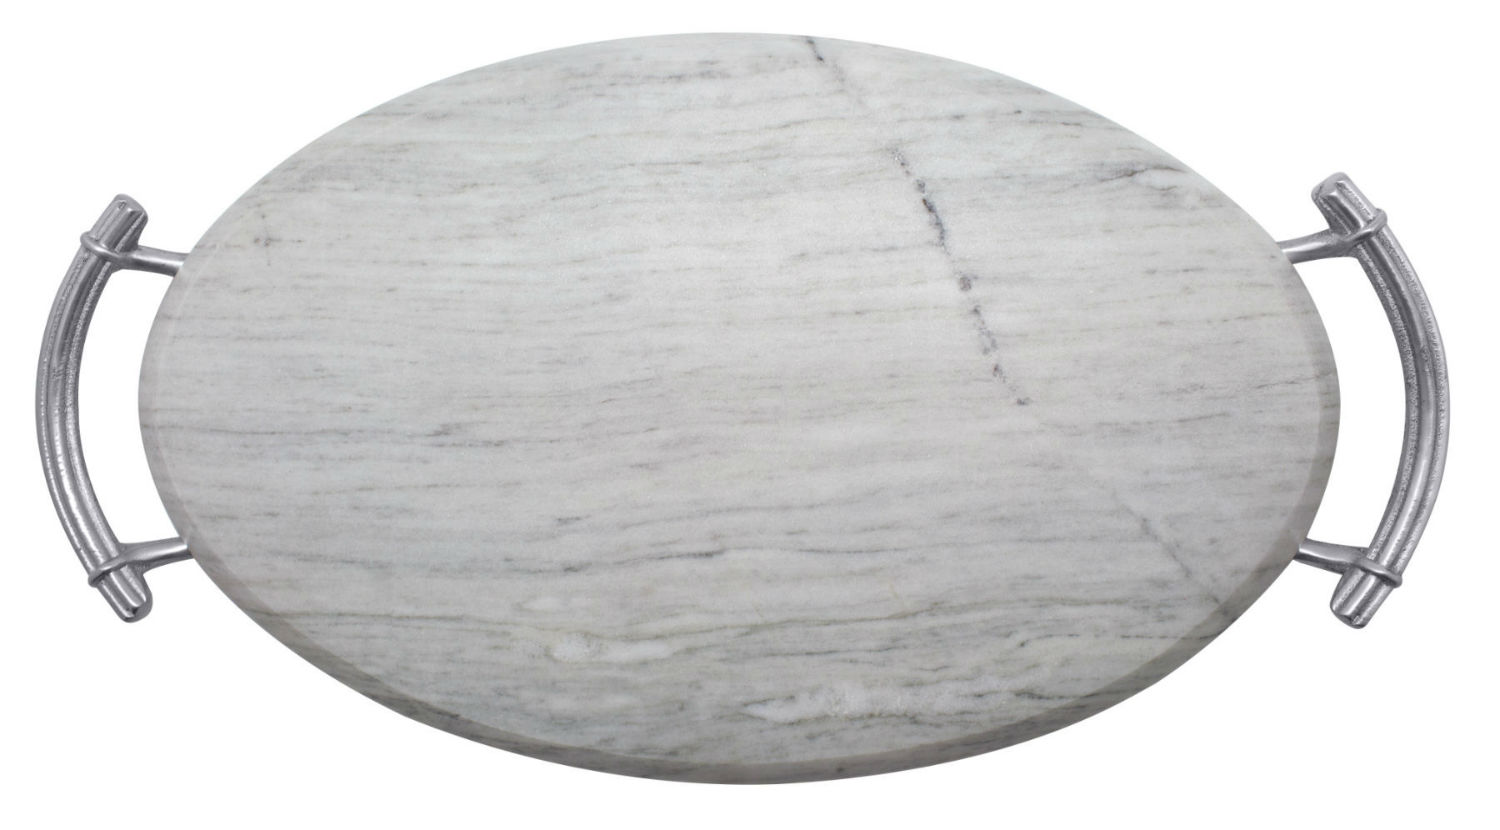 Driftwood Classic White Marble Serving Board By Mariposa